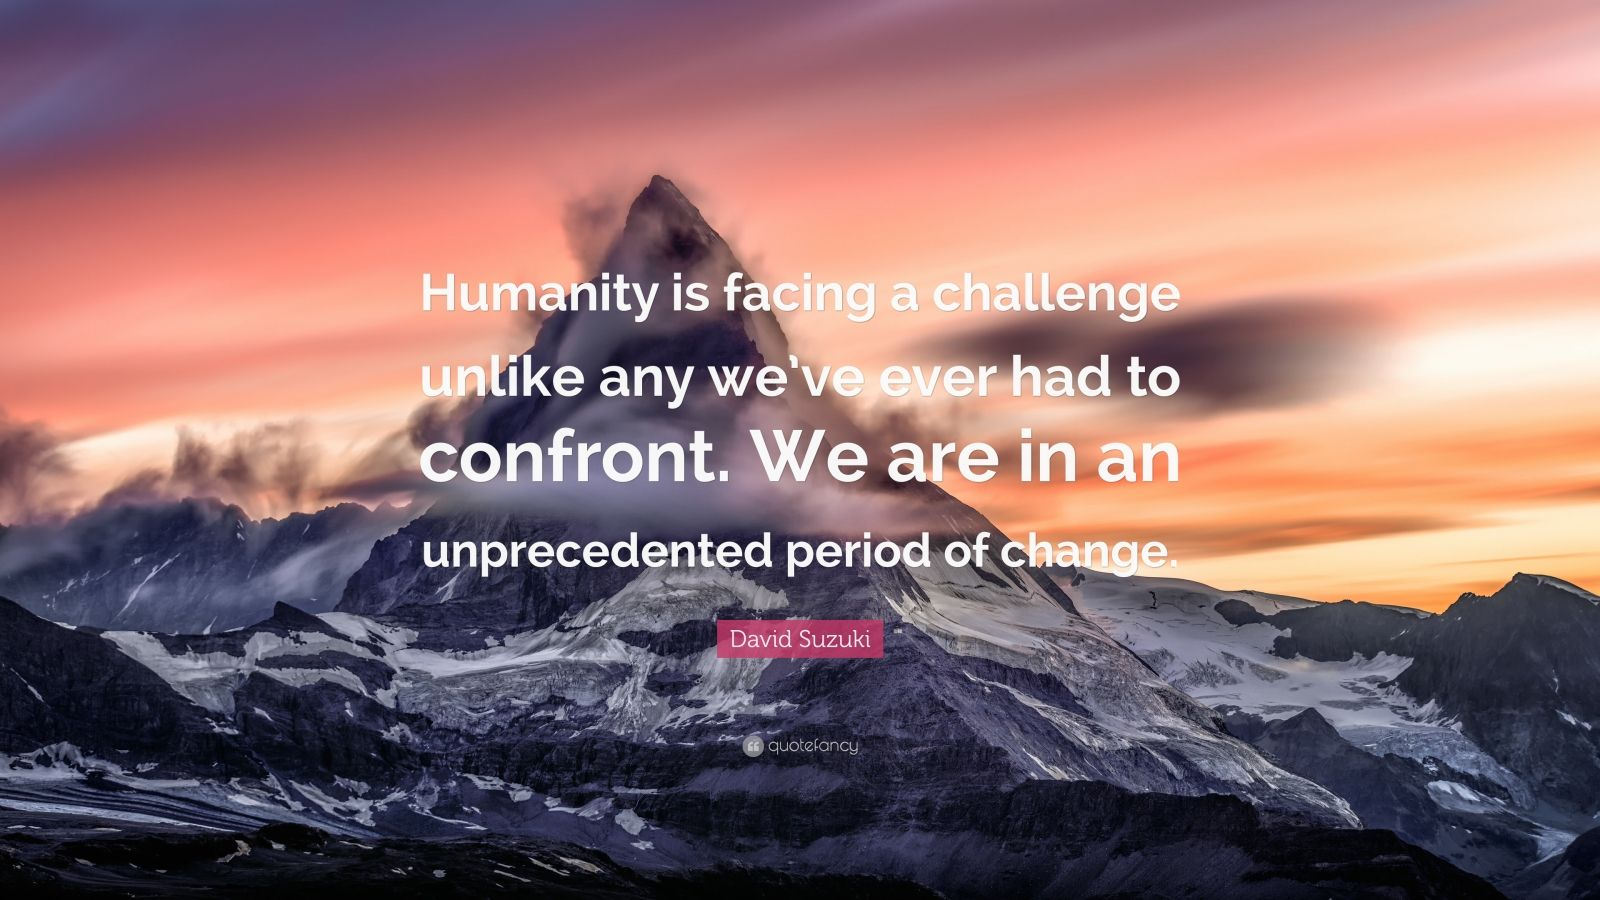 """David Suzuki Quote: """"Humanity is facing a challenge unlike any we've ever had to confront. We are in an unprecedented period of change."""""""